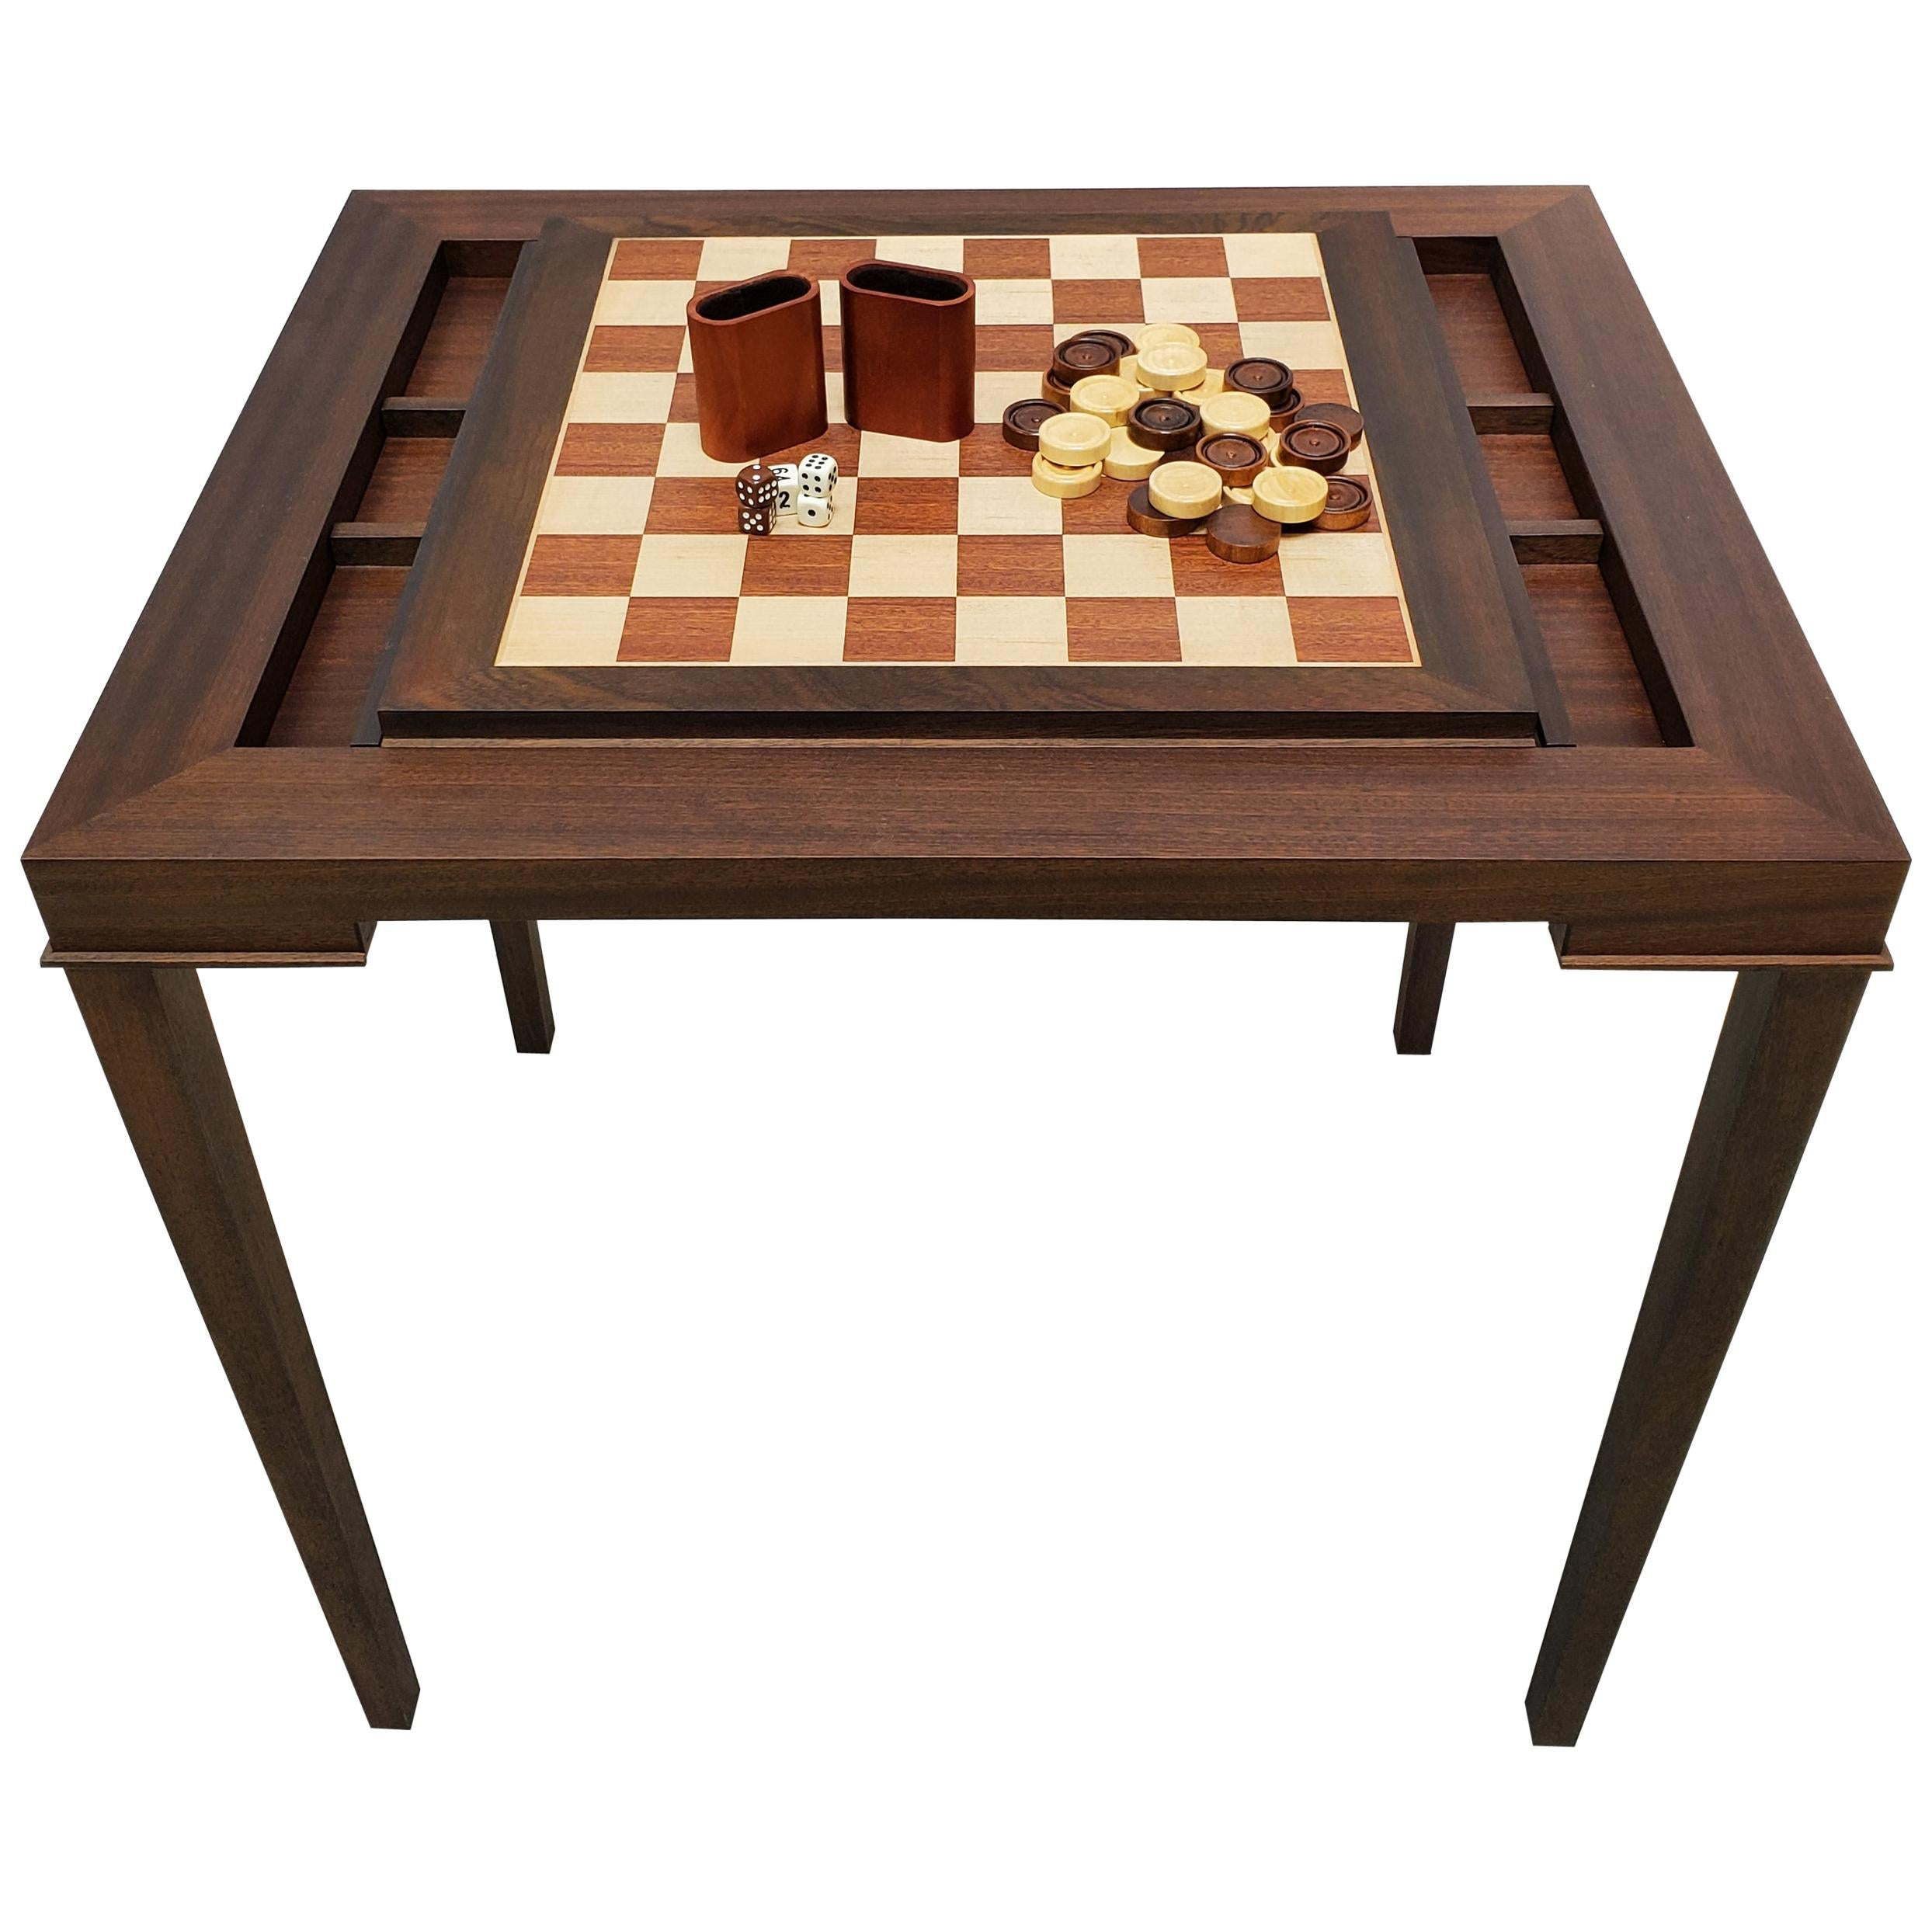 Custom Walnut Game Table with Backgammon and Chess Table